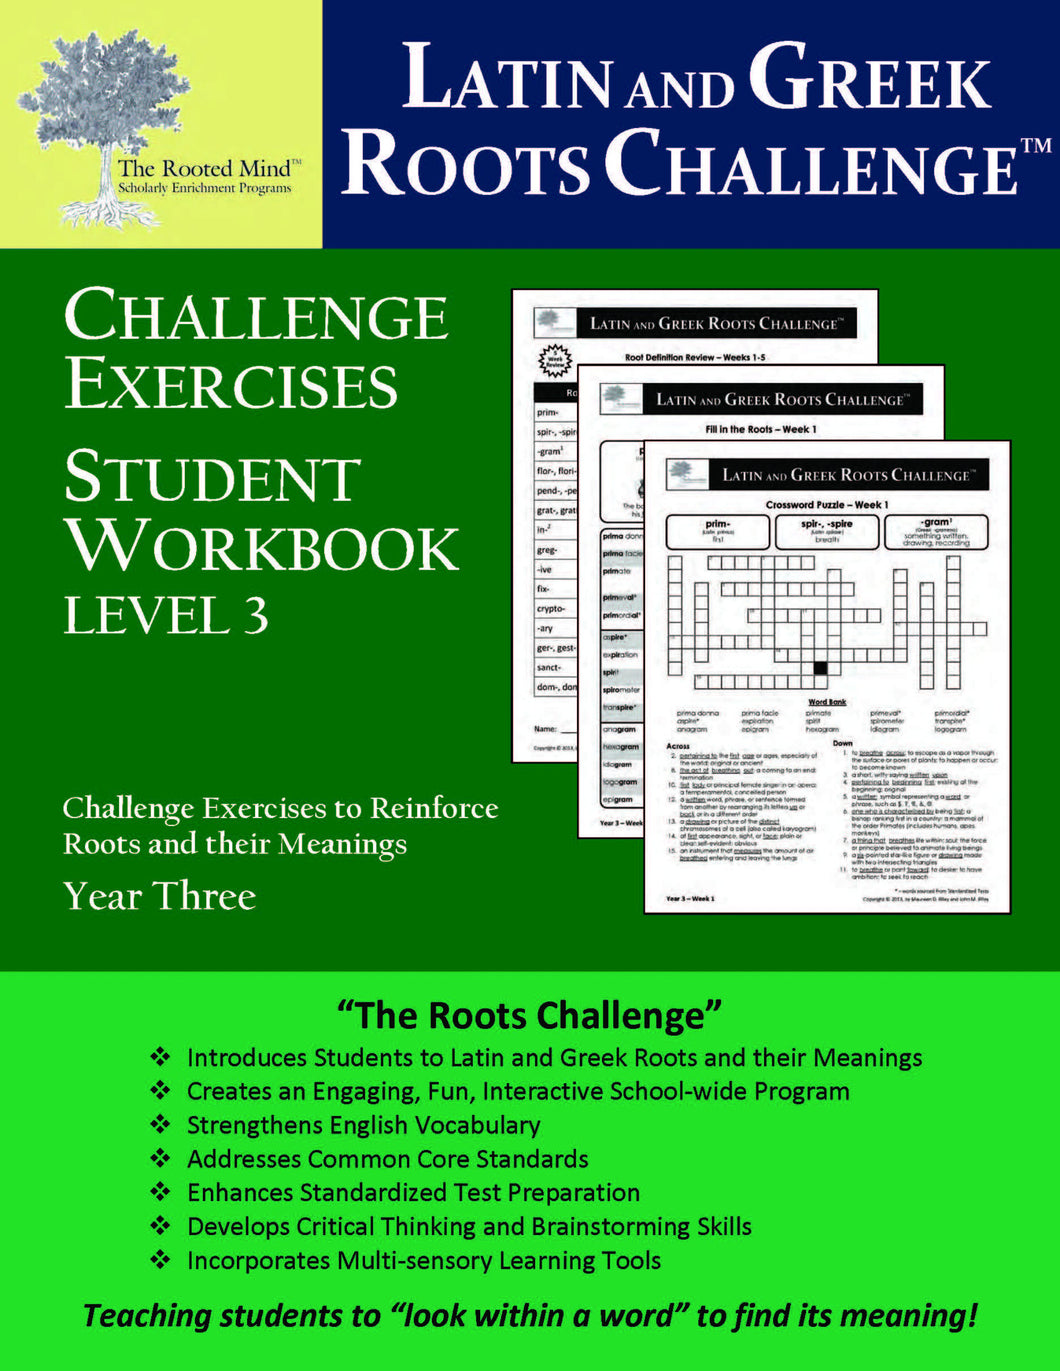 Latin and Greek Roots Challenge - Year 3 - Level 3 Student Workbook